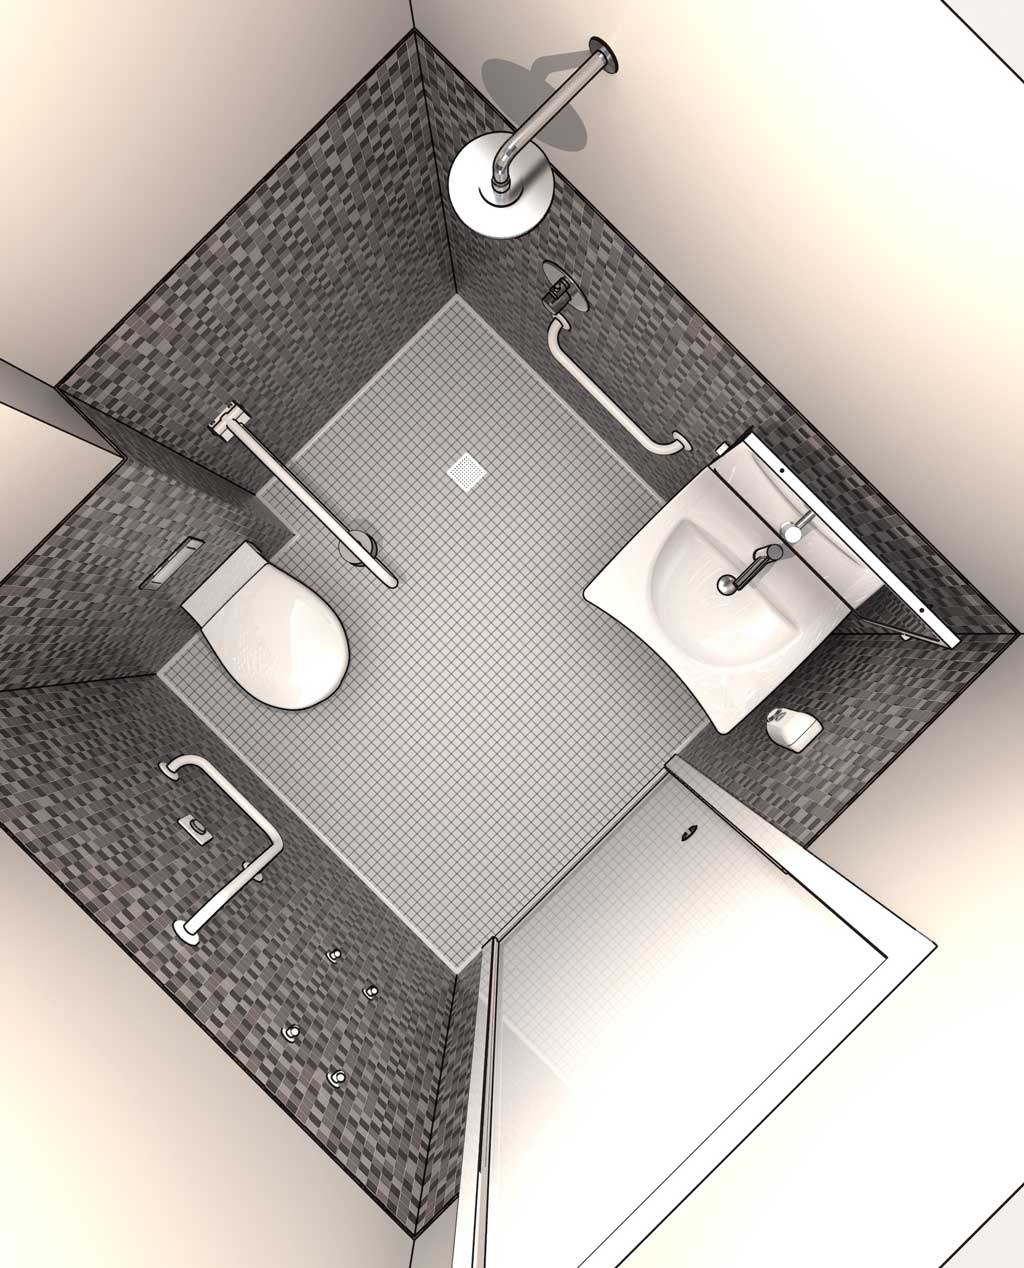 Disabled Bathroom Design DWG drawings in 3D